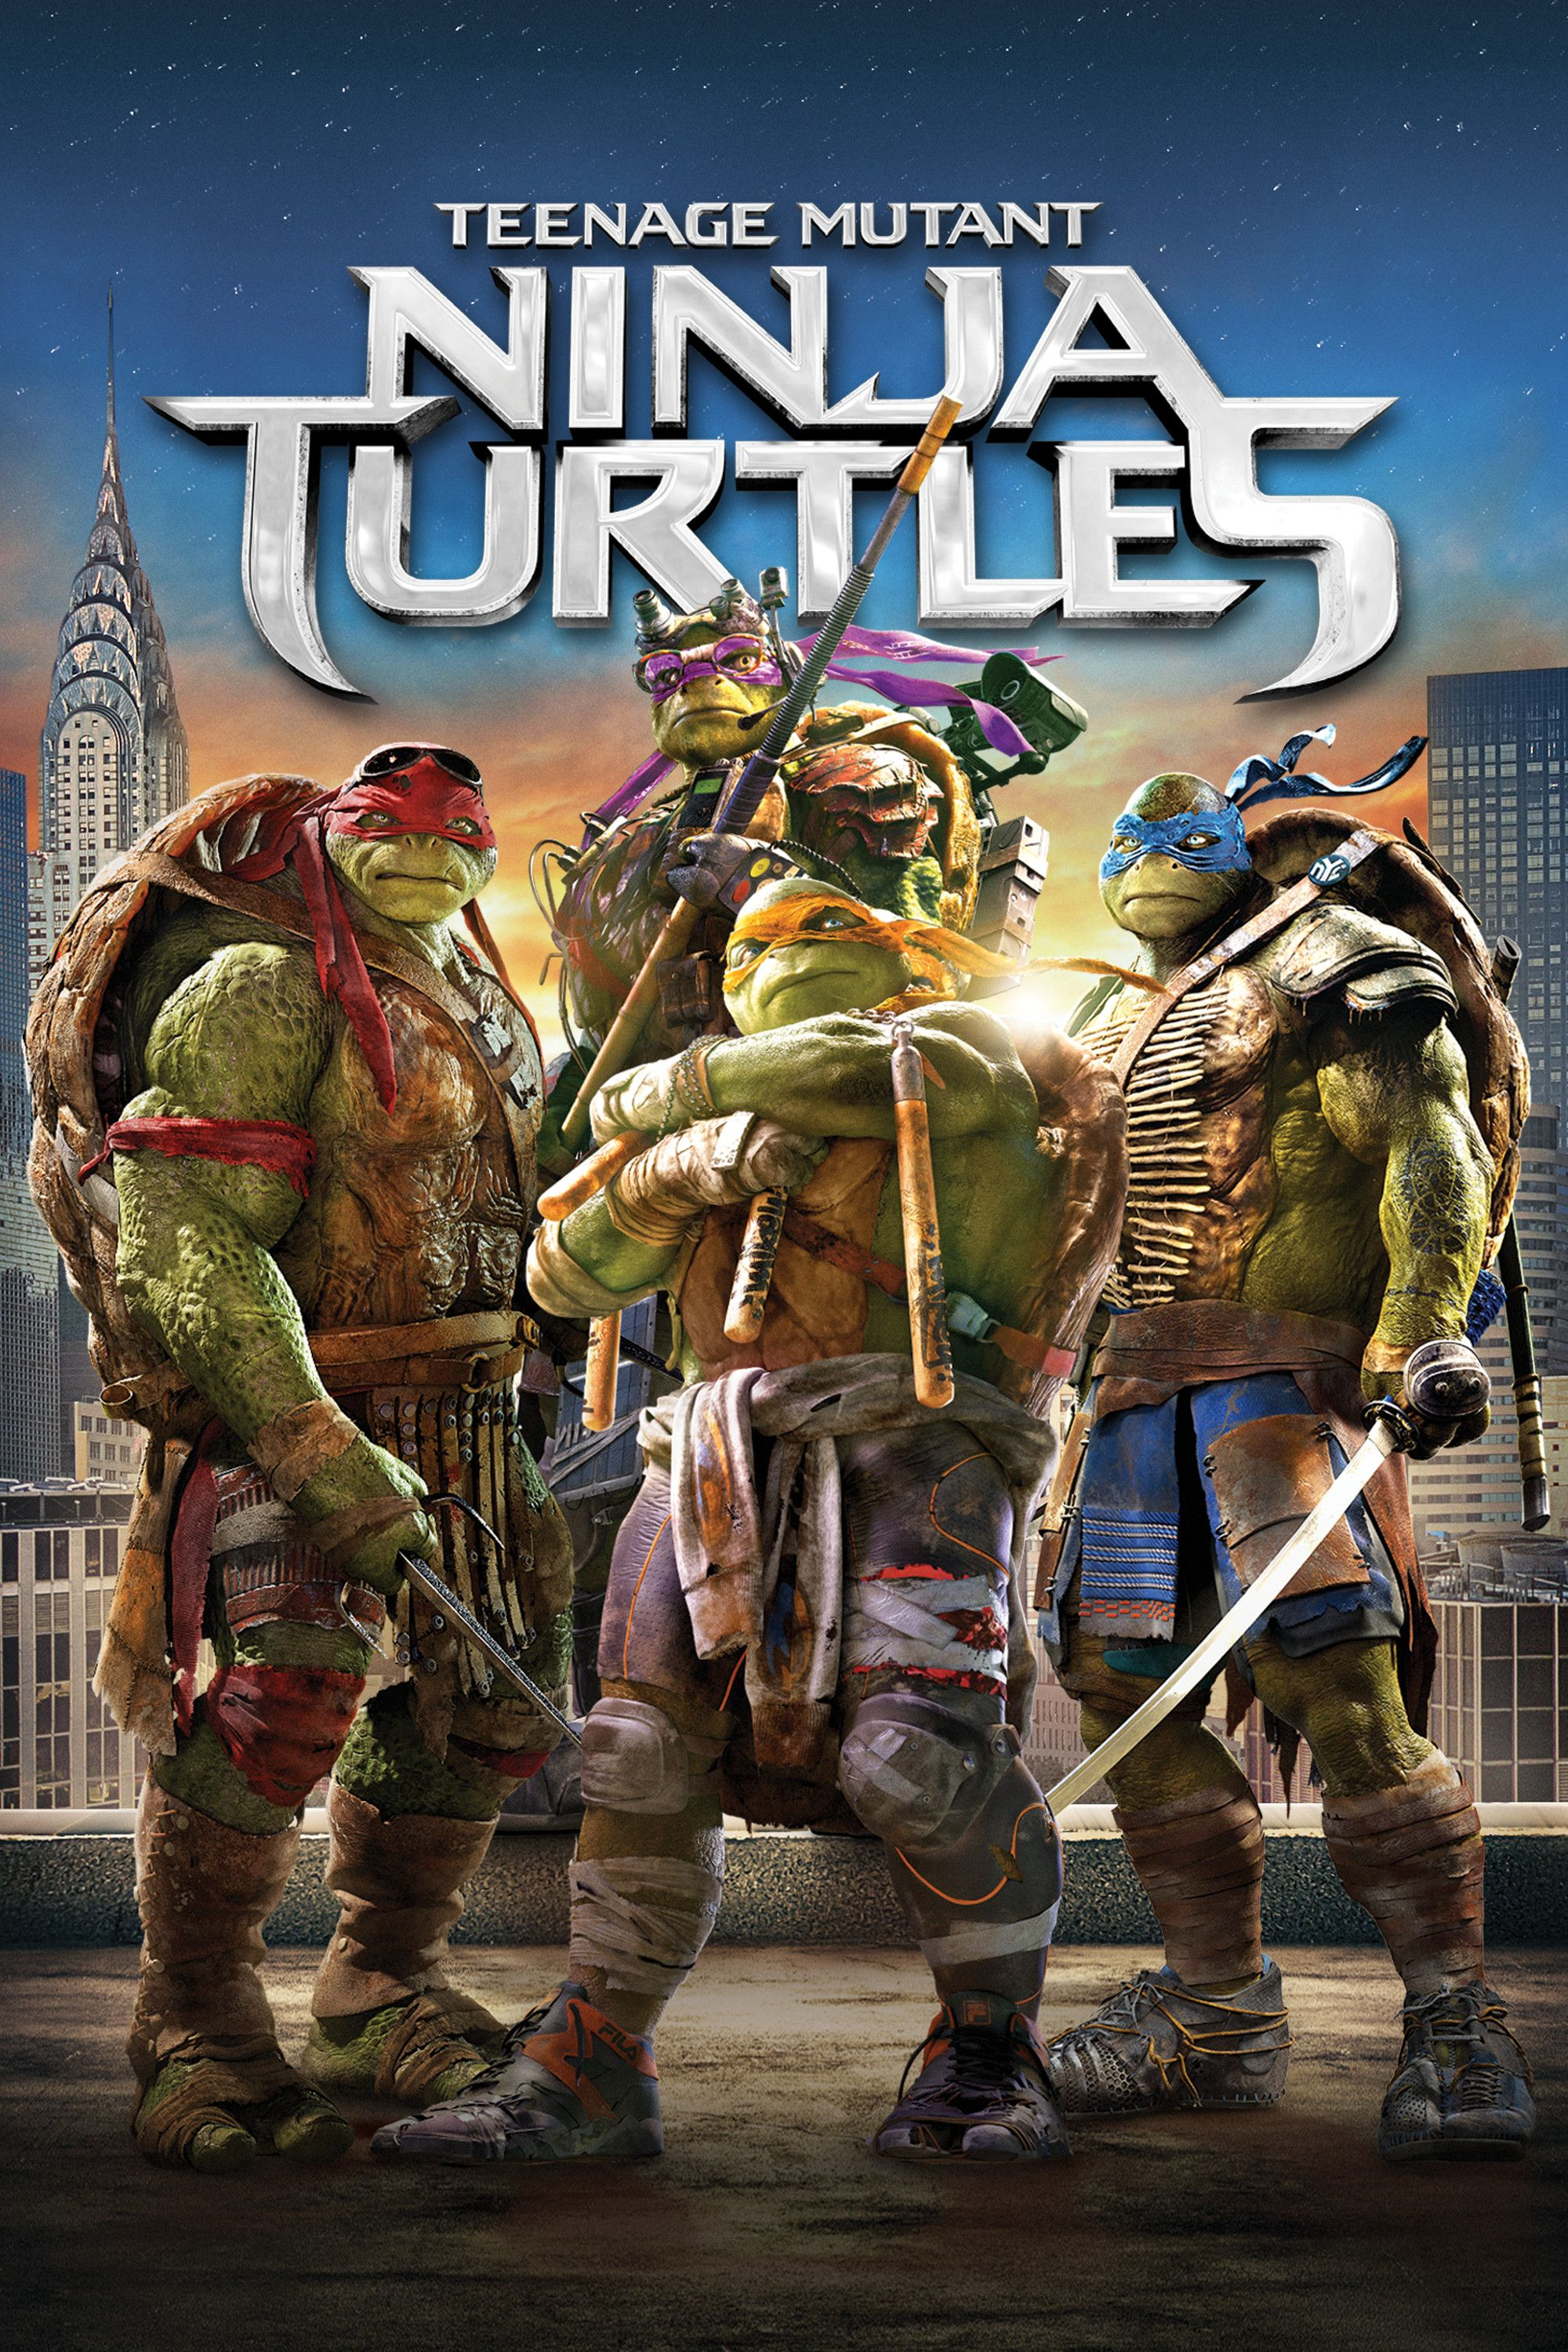 Teenage Mutant Ninja Turtles 2014 Movie Poster Megan Fox Will Arnett William Fichtner Teenagemutantninjaturtles 2014 Meganfox W Blu Ray Dvd Ninja